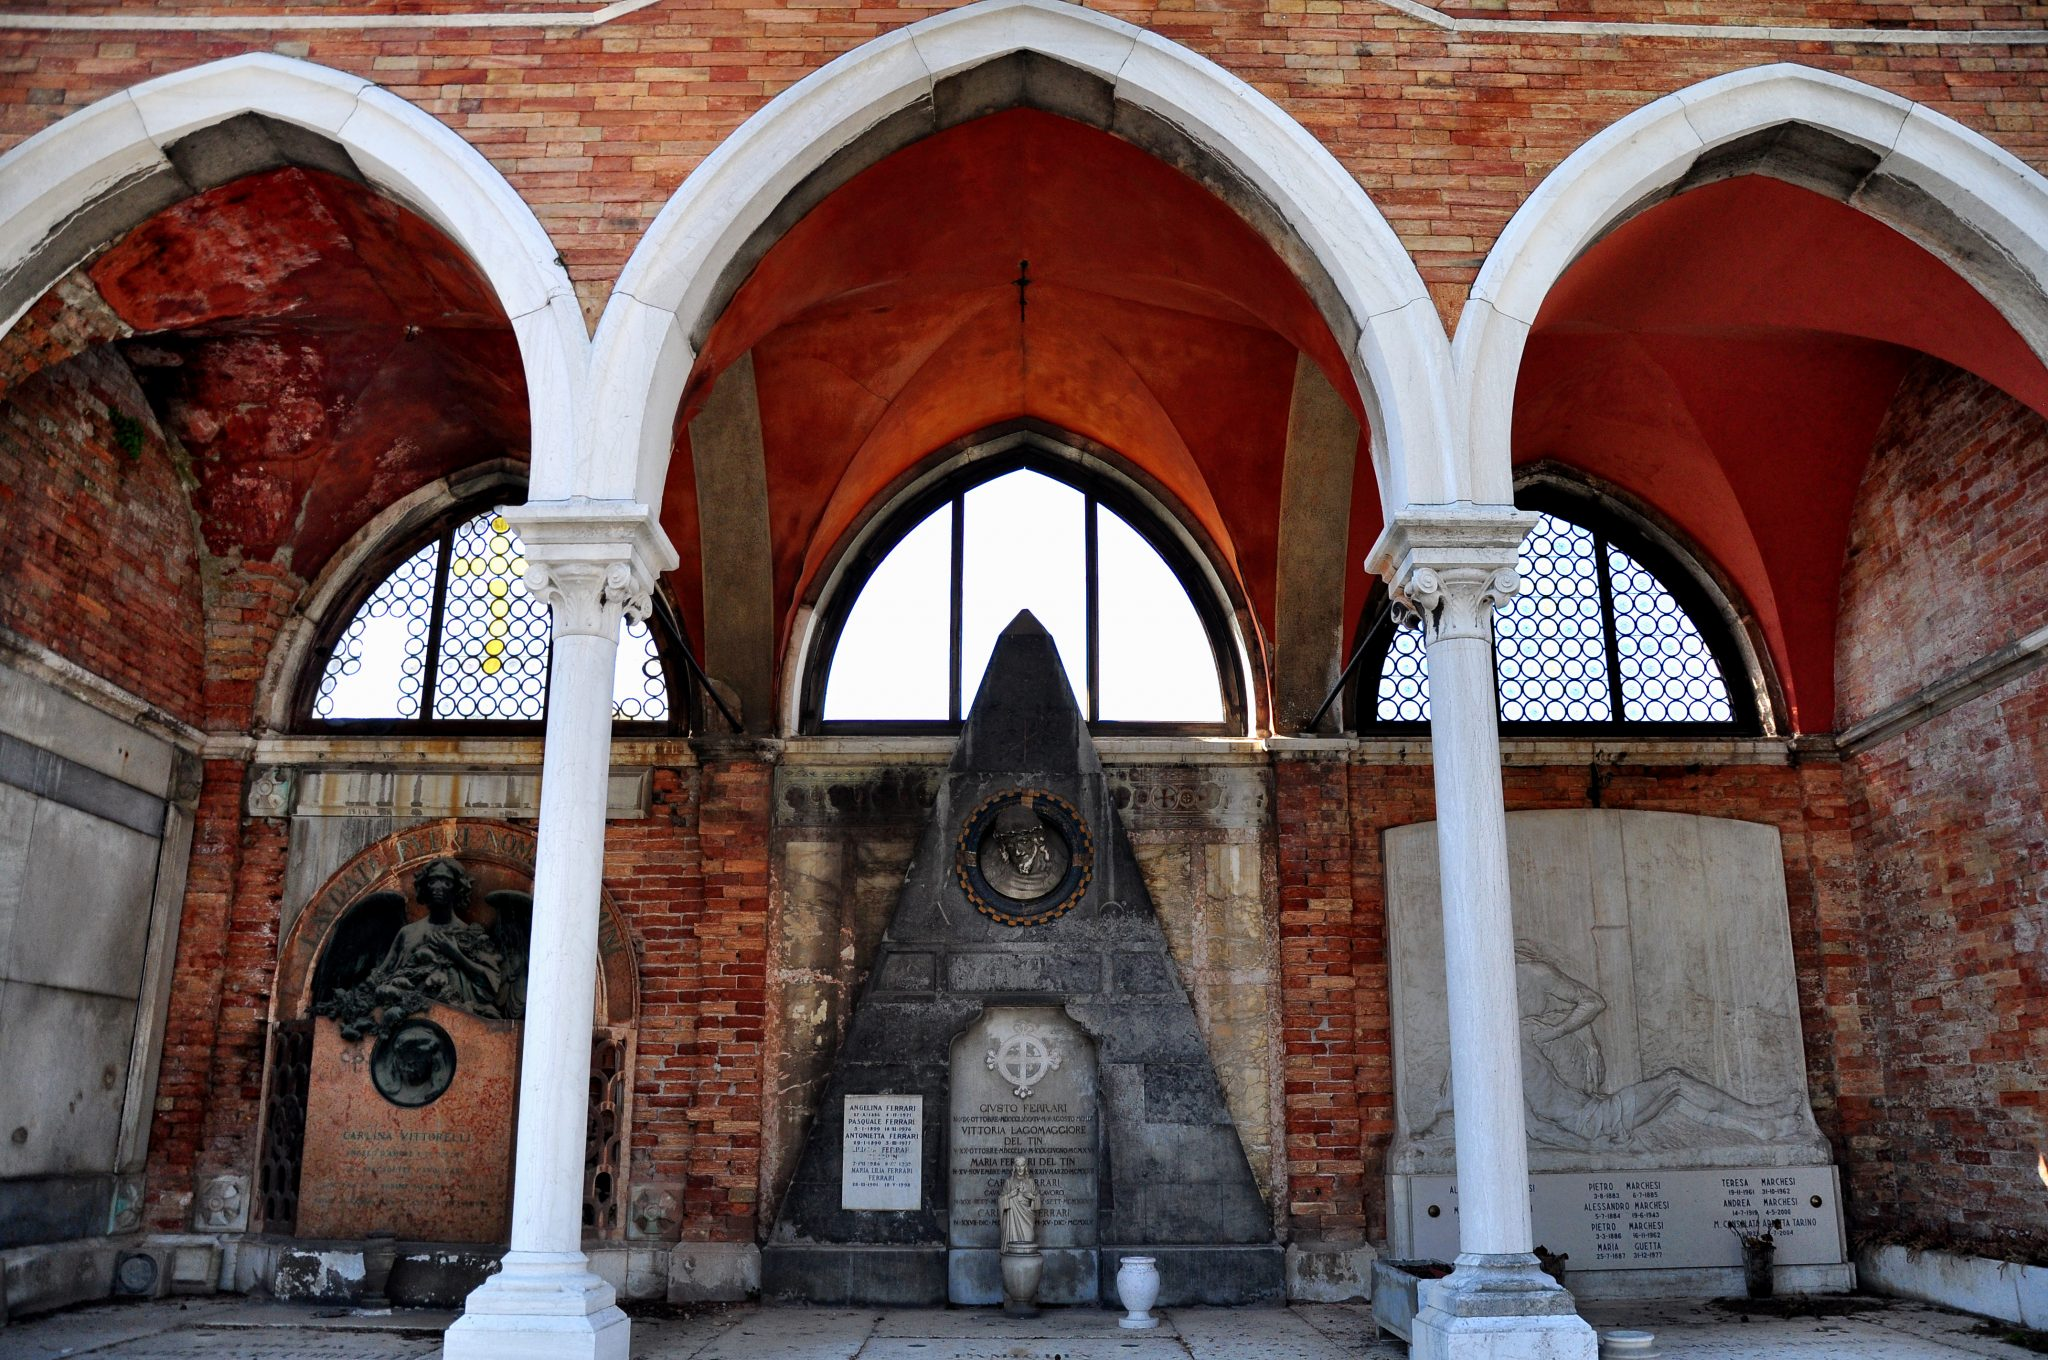 Cemetery of Isola di San Michele, Venice